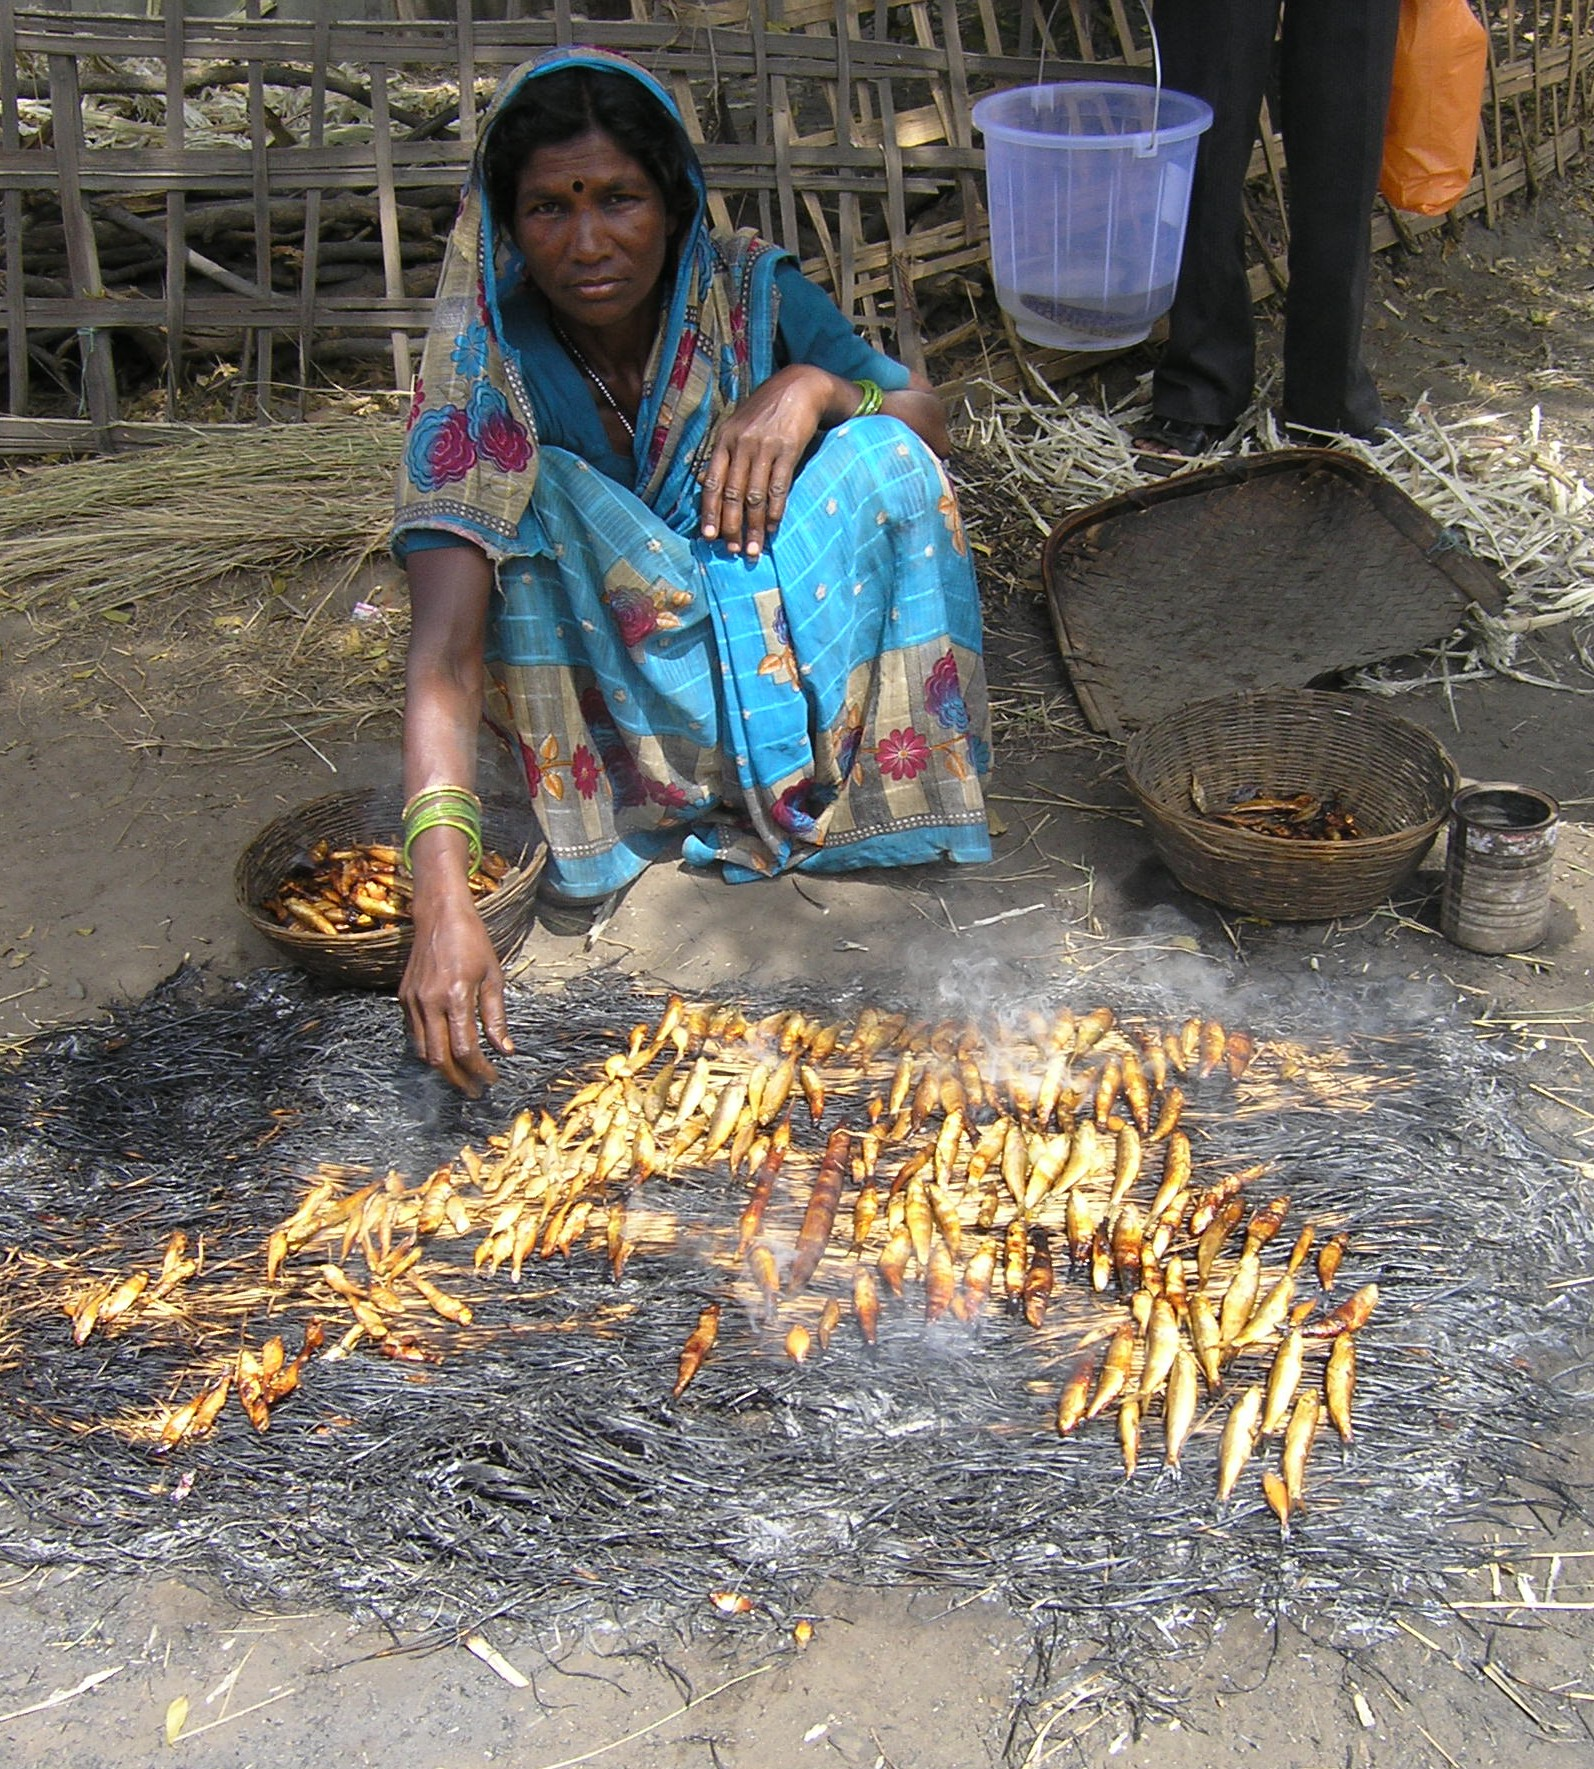 Traditional fish smoking by village woman in Madhya Pradesh, India. Photo: